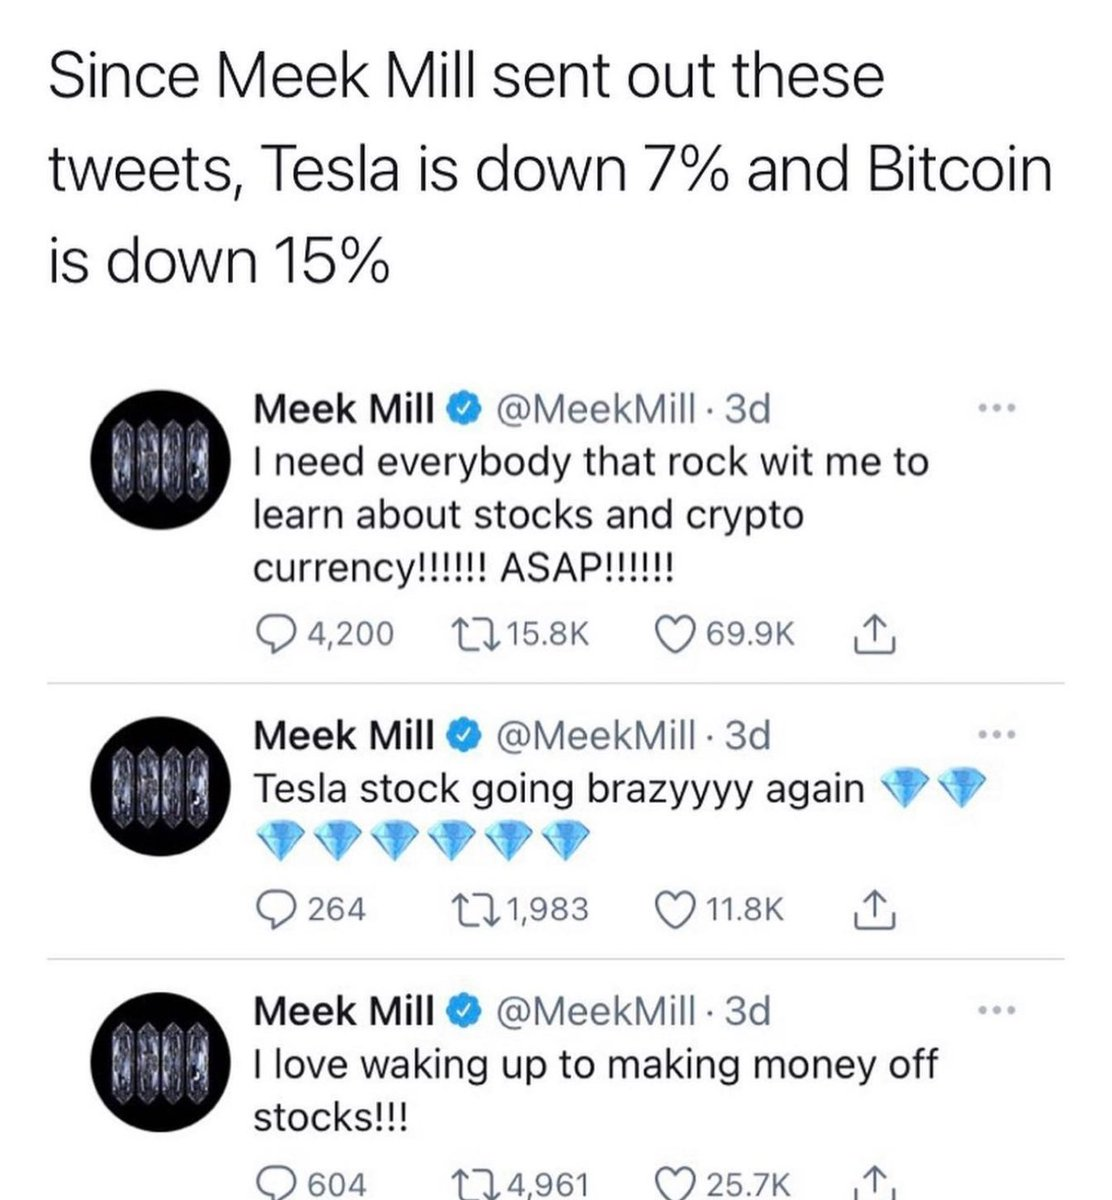 Aye G, you gonna have to get up off the internet man @MeekMill... 😂😂😂😂😂